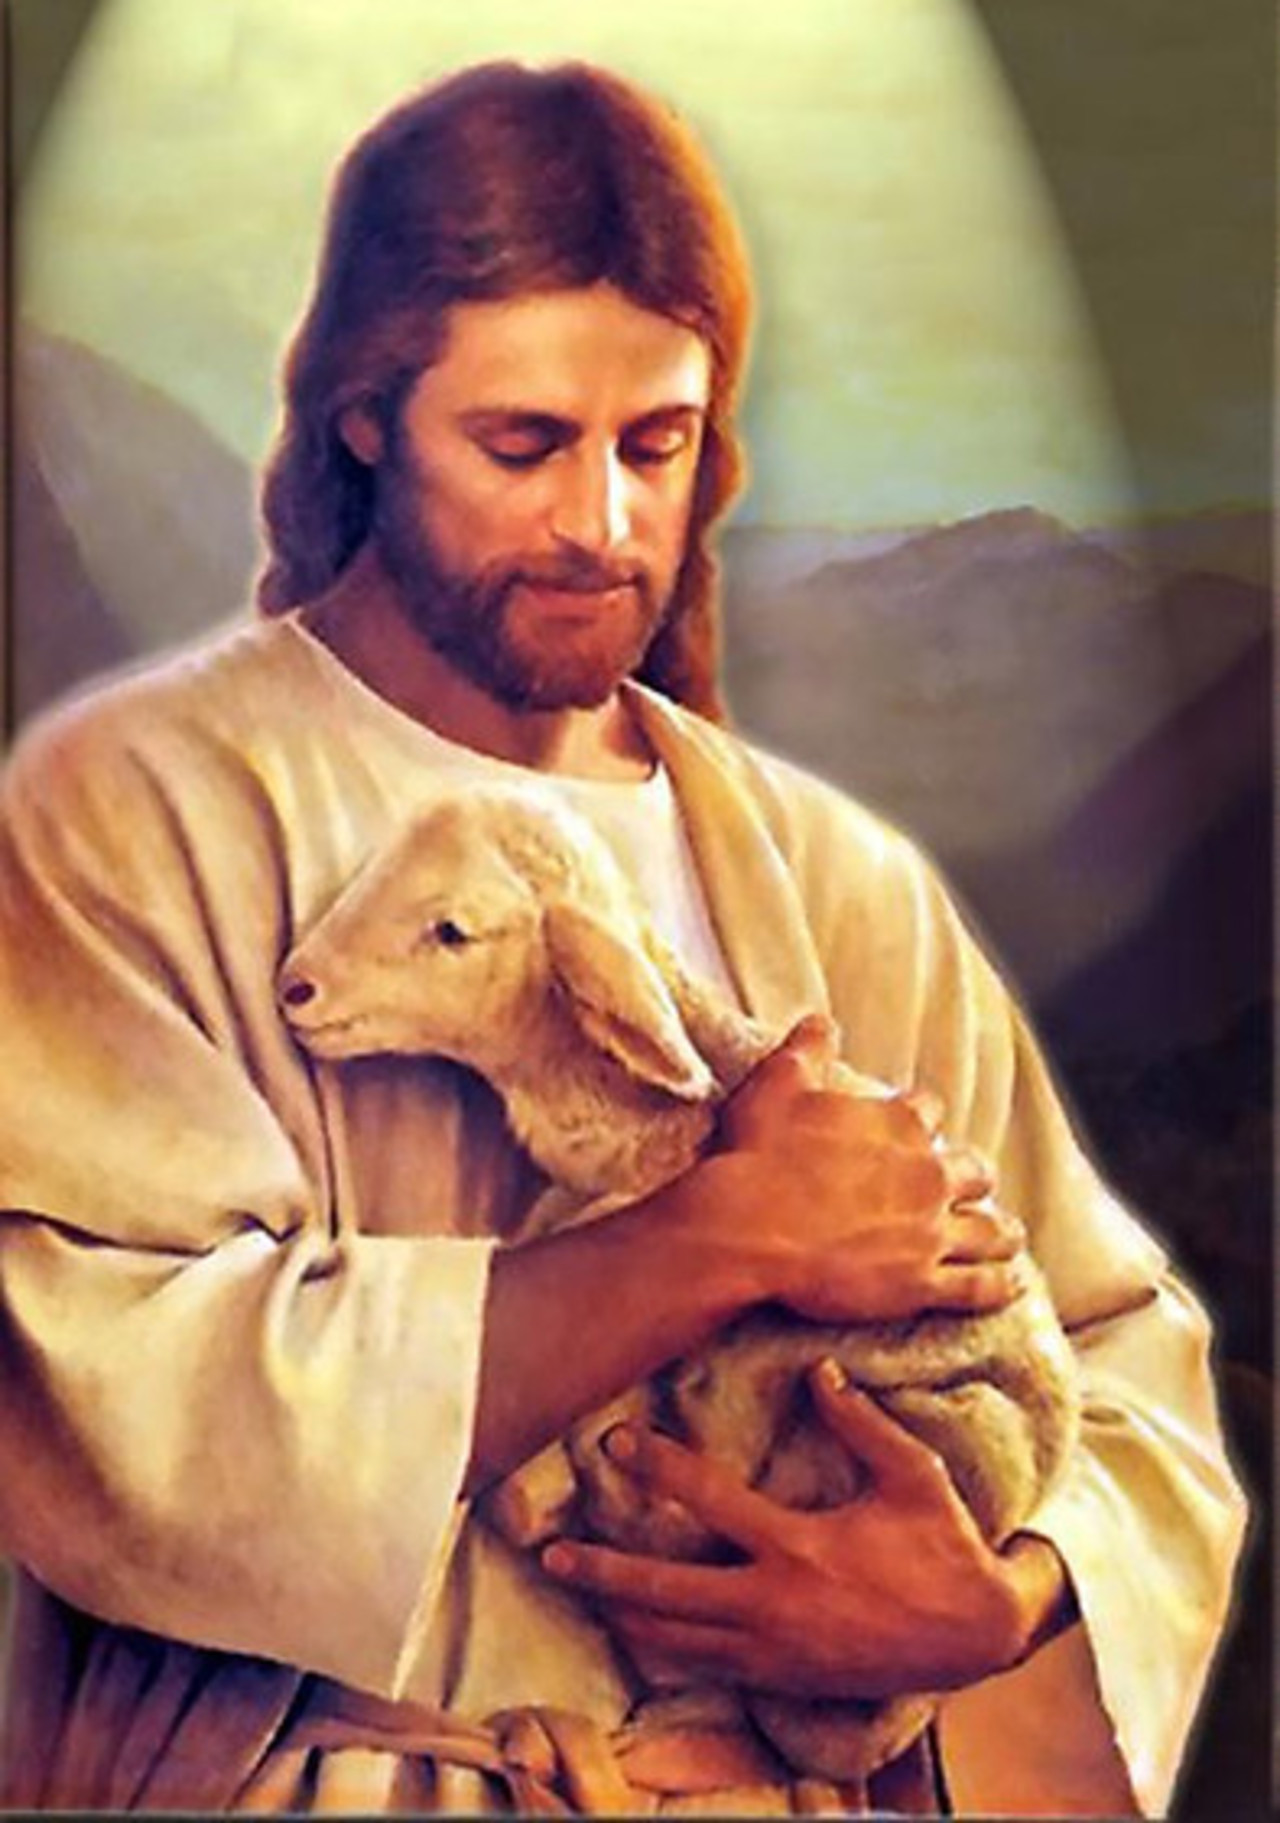 Jesus with a Sheep in Hands 125.18 Kb